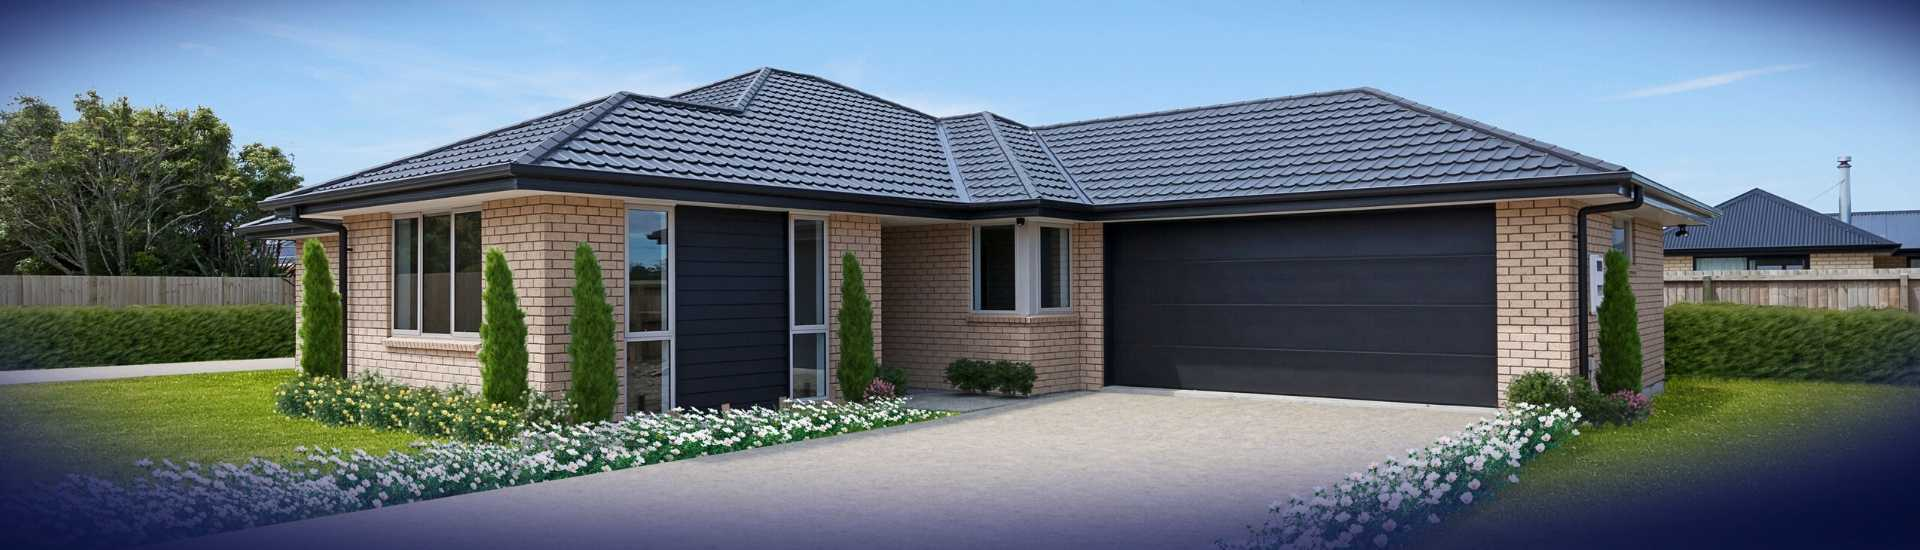 Header Why Choose Headstart by Hallmark to Build Your Home 1 - Why Choose Headstart by Hallmark to Build Your Home